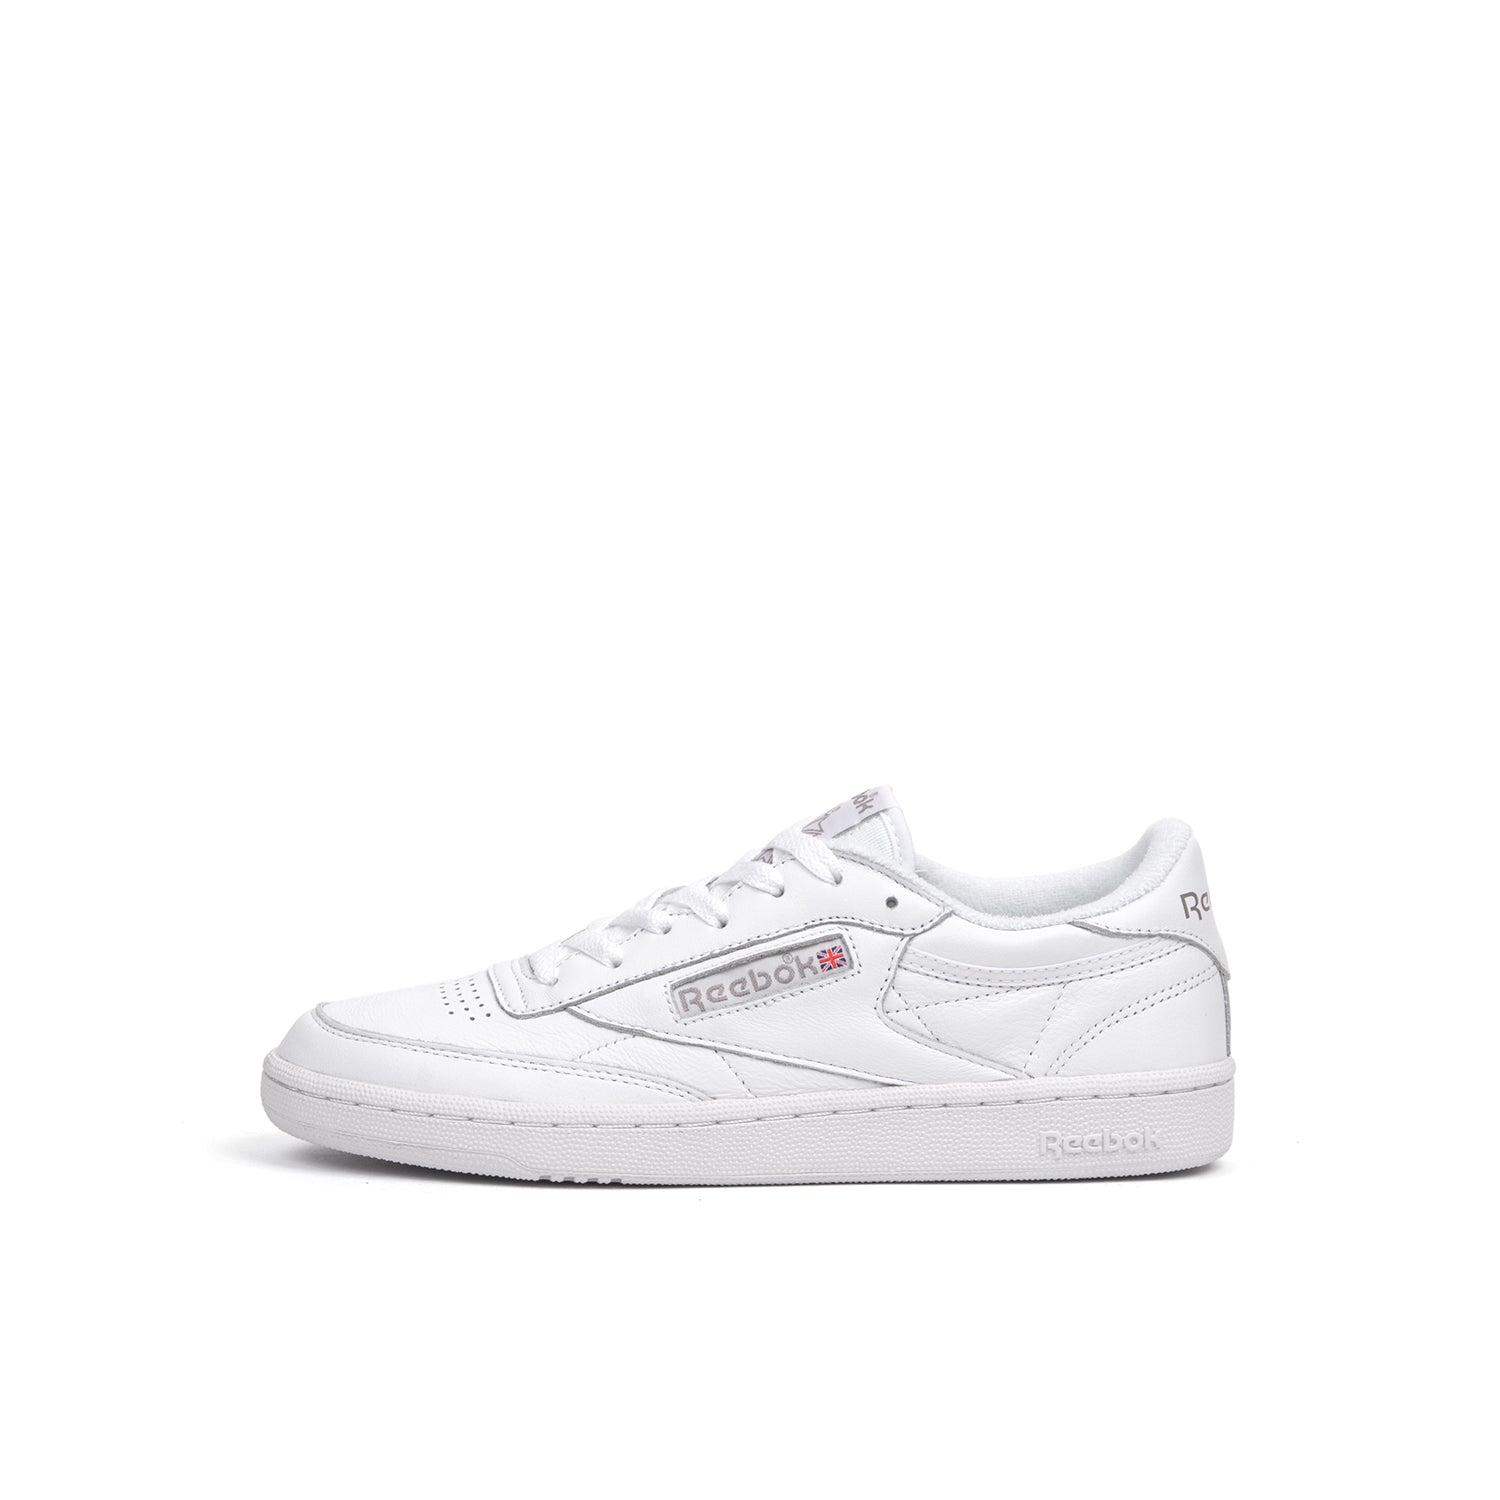 b098660a623186 Reebok CLUB C 85 Archive White Carbon - CN0907 – Concrete